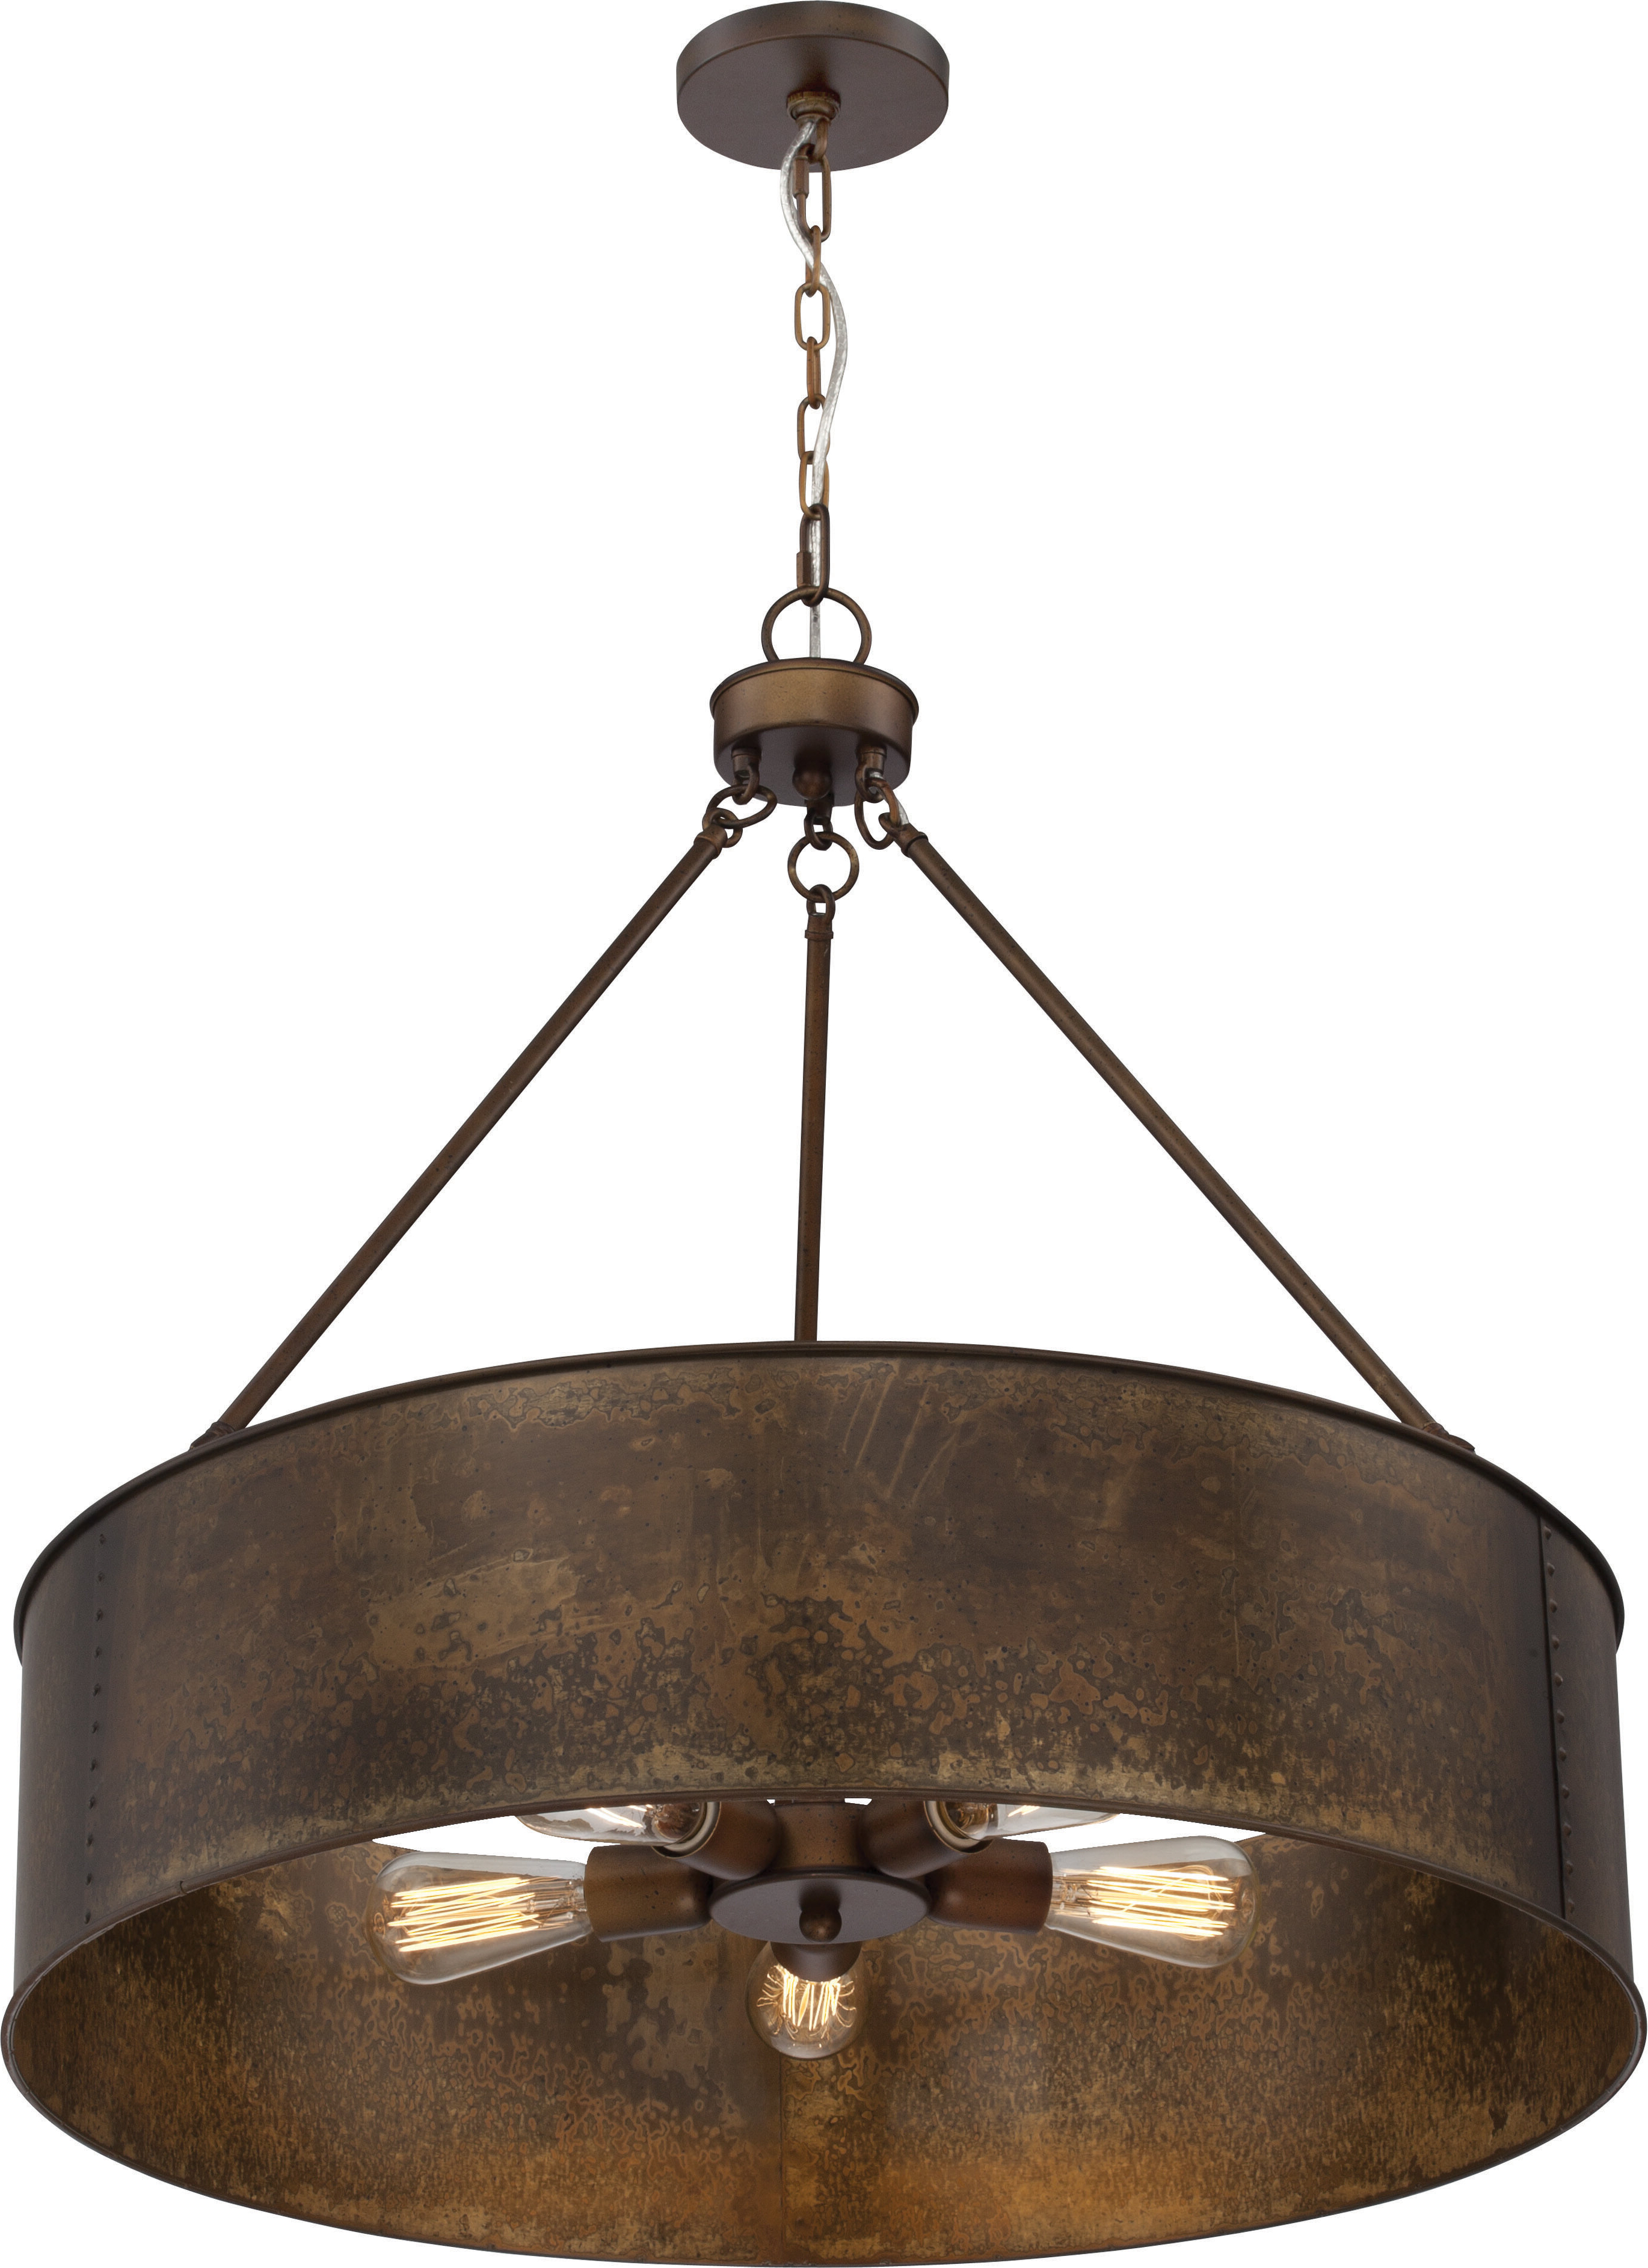 2020 Farmhouse & Rustic Trent Austin Design Chandeliers (Gallery 19 of 20)